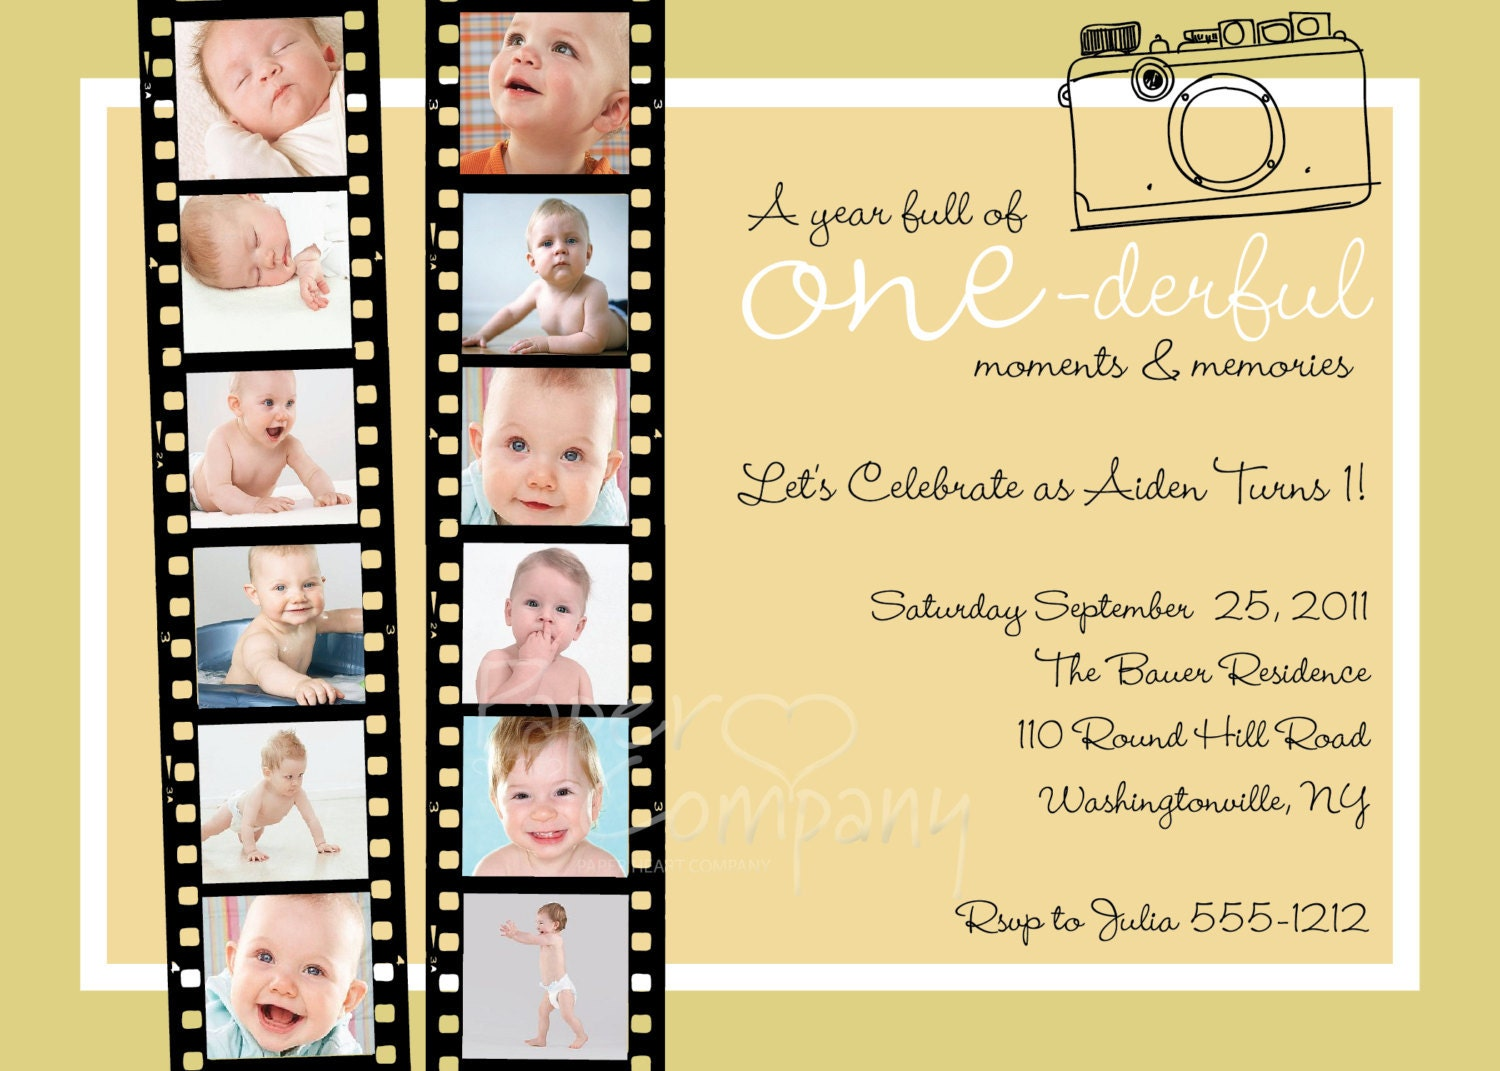 One Year In A Flash First Birthday Invitation Printable - Birthday invitation cards 1 year old boy